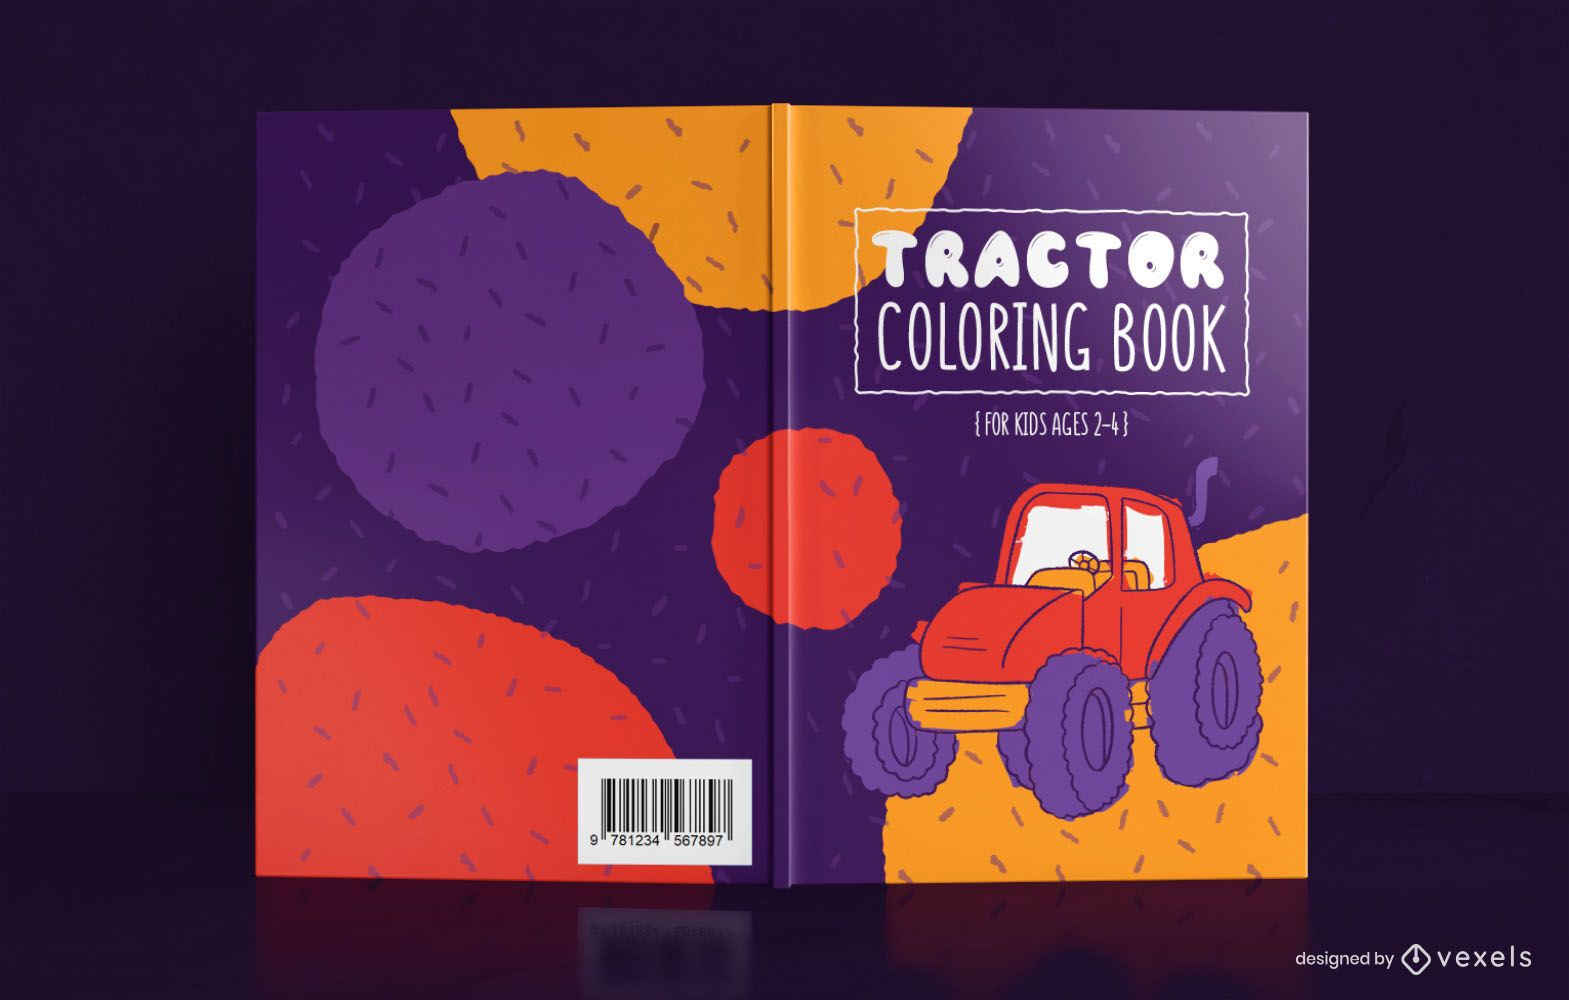 Tractor Coloring Book Cover Design